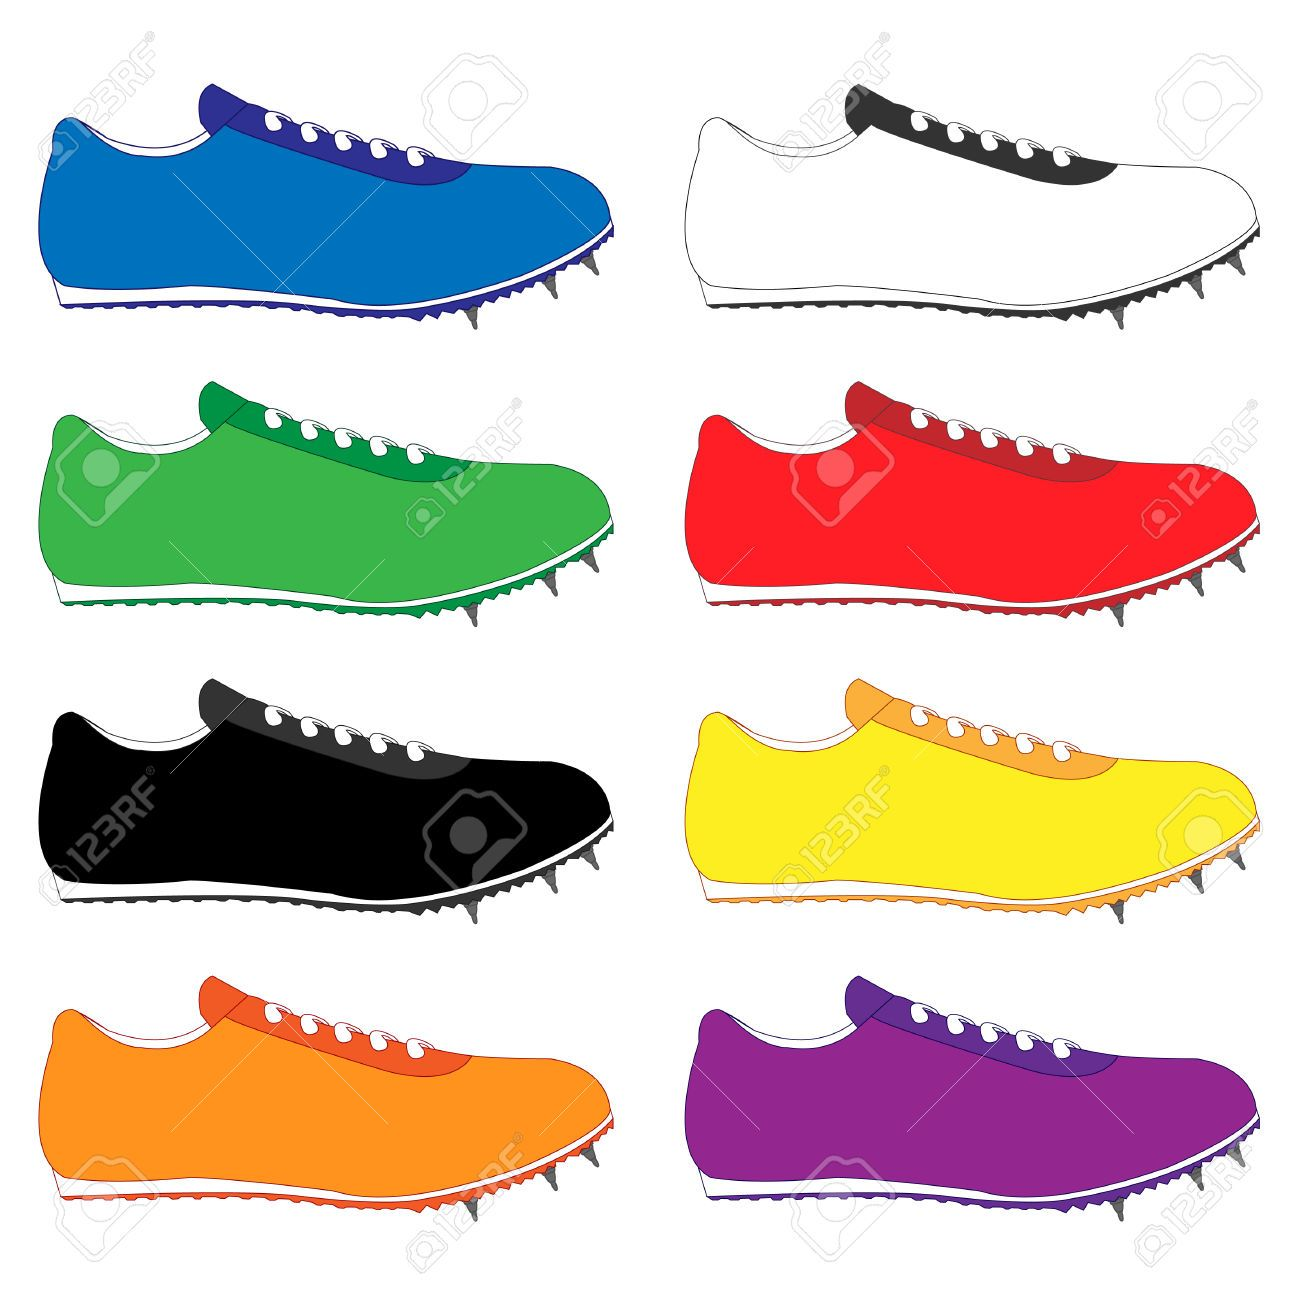 Running Spikes Stock Illustrations, Cliparts And Royalty.